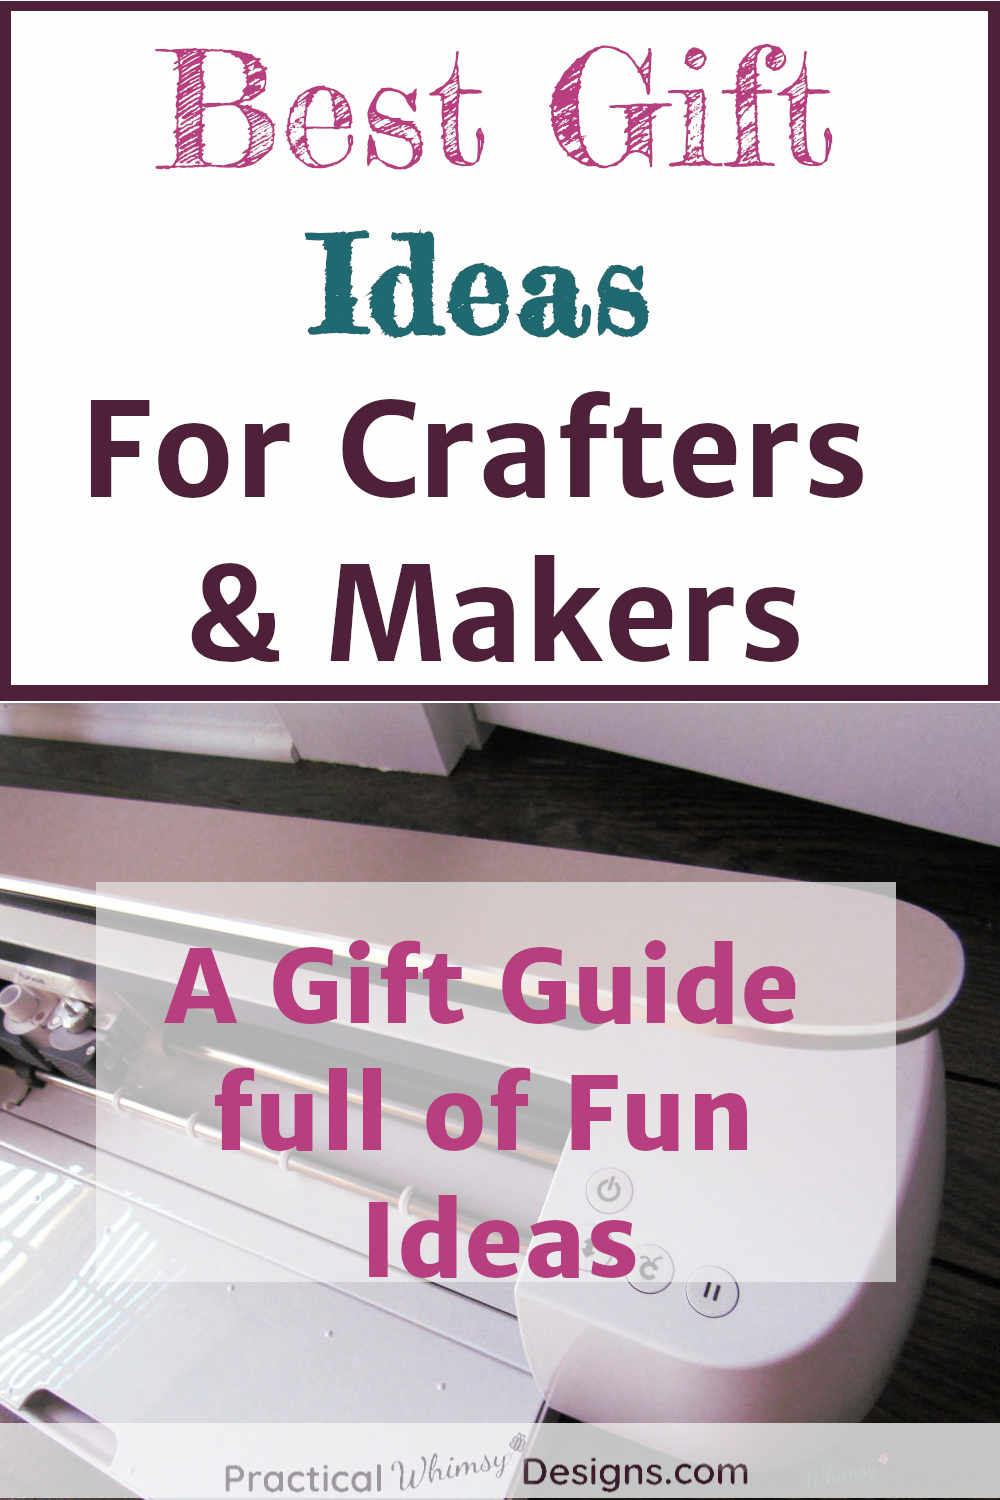 Best gift ideas for crafters and makers a gift guide full of fun ideas